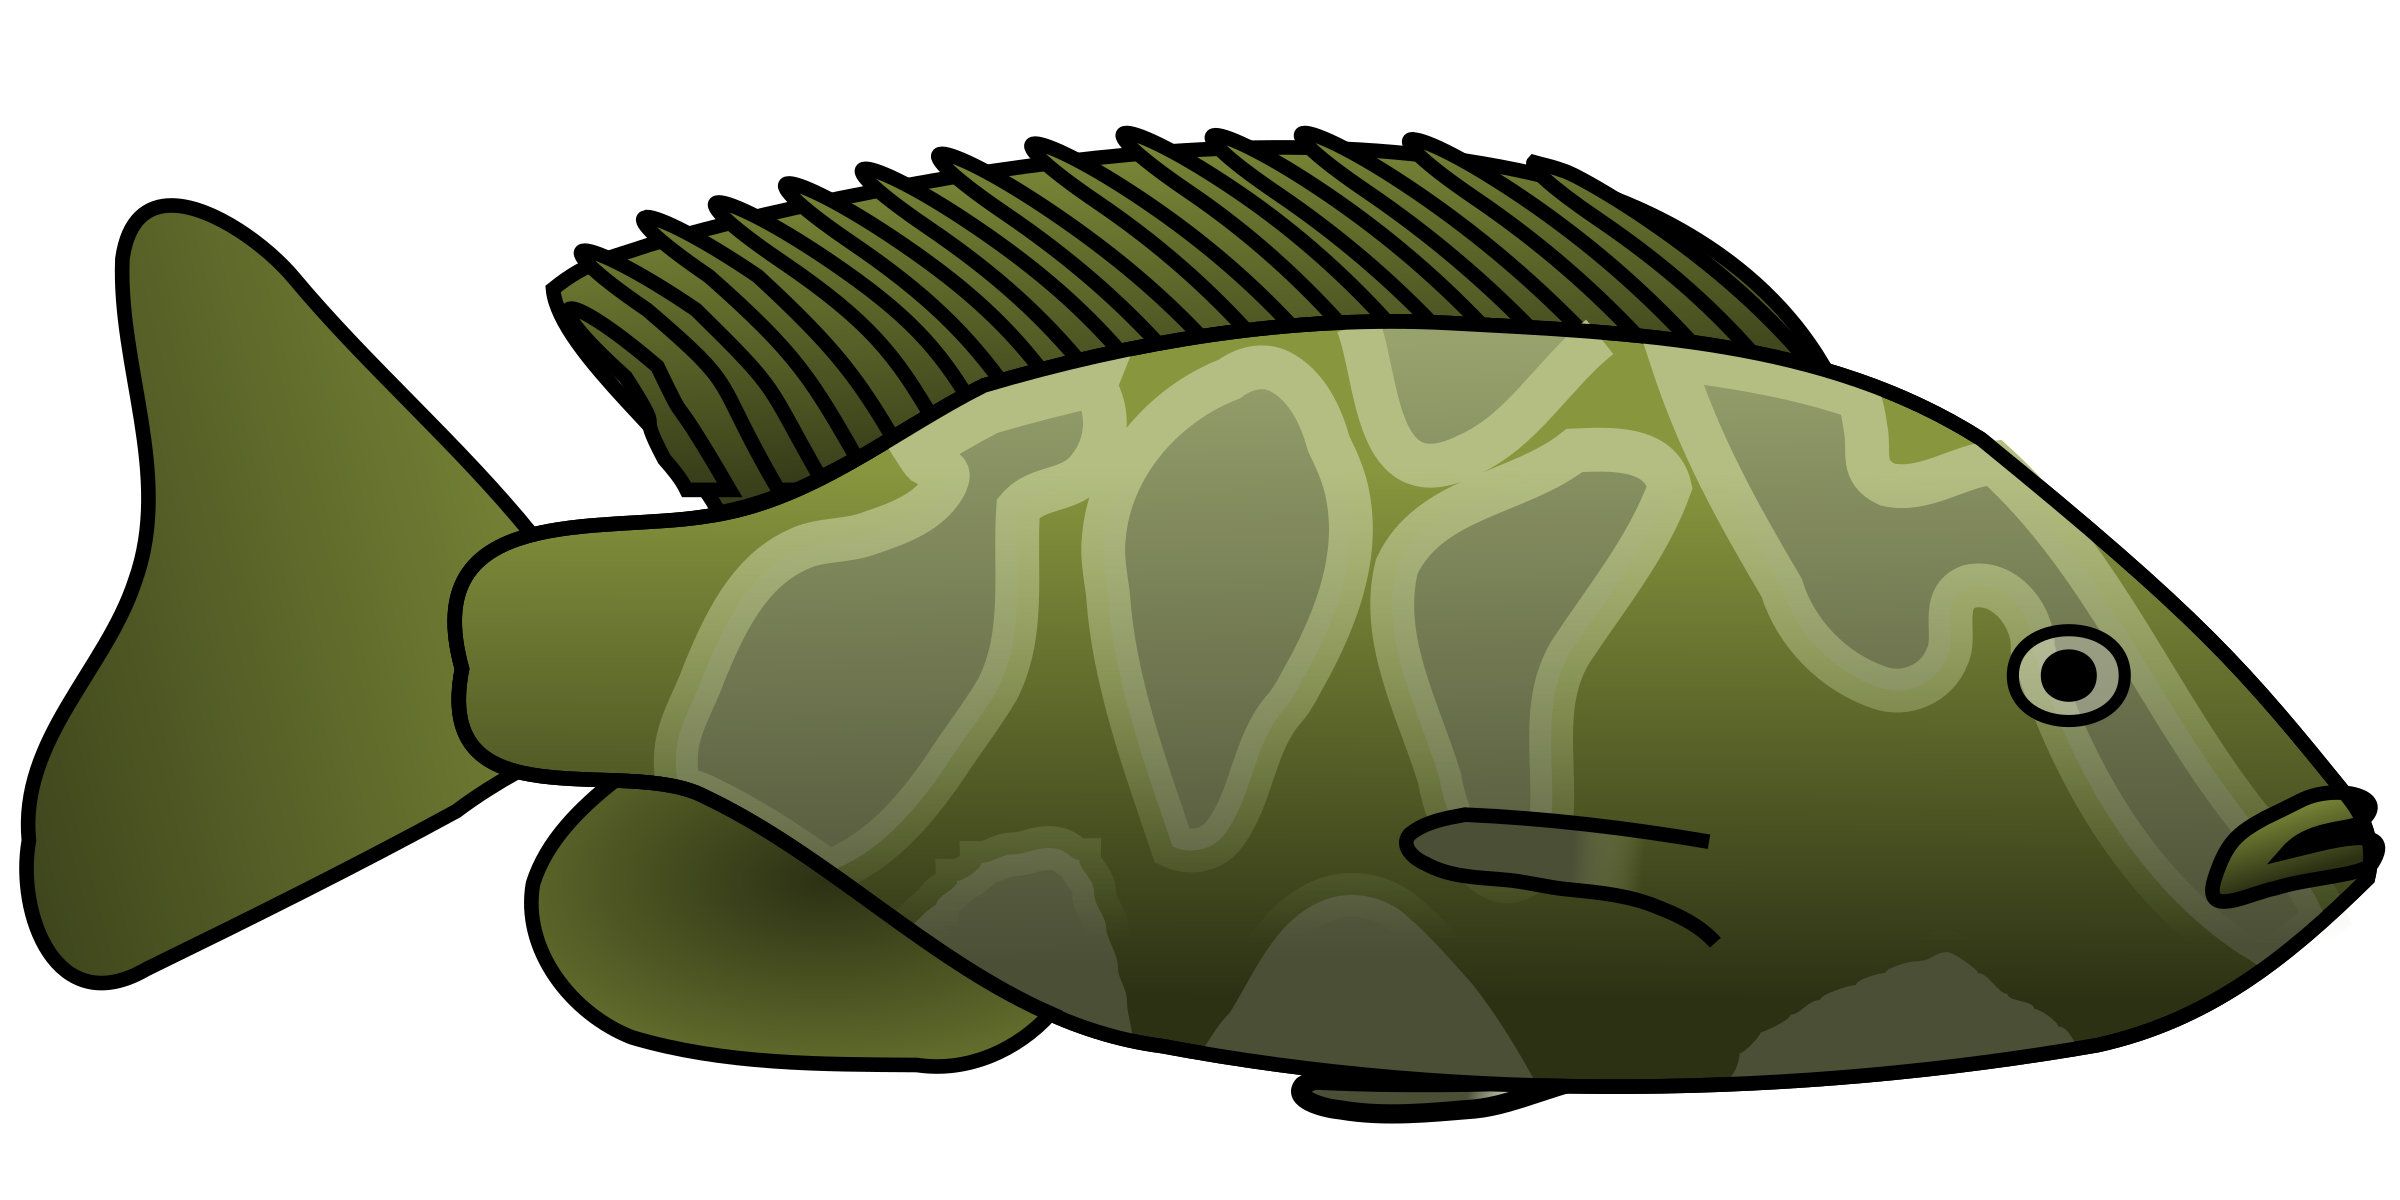 Clipart of a bass fish from a lake png black and white stock Clipart - Giraffe Cichlid png black and white stock